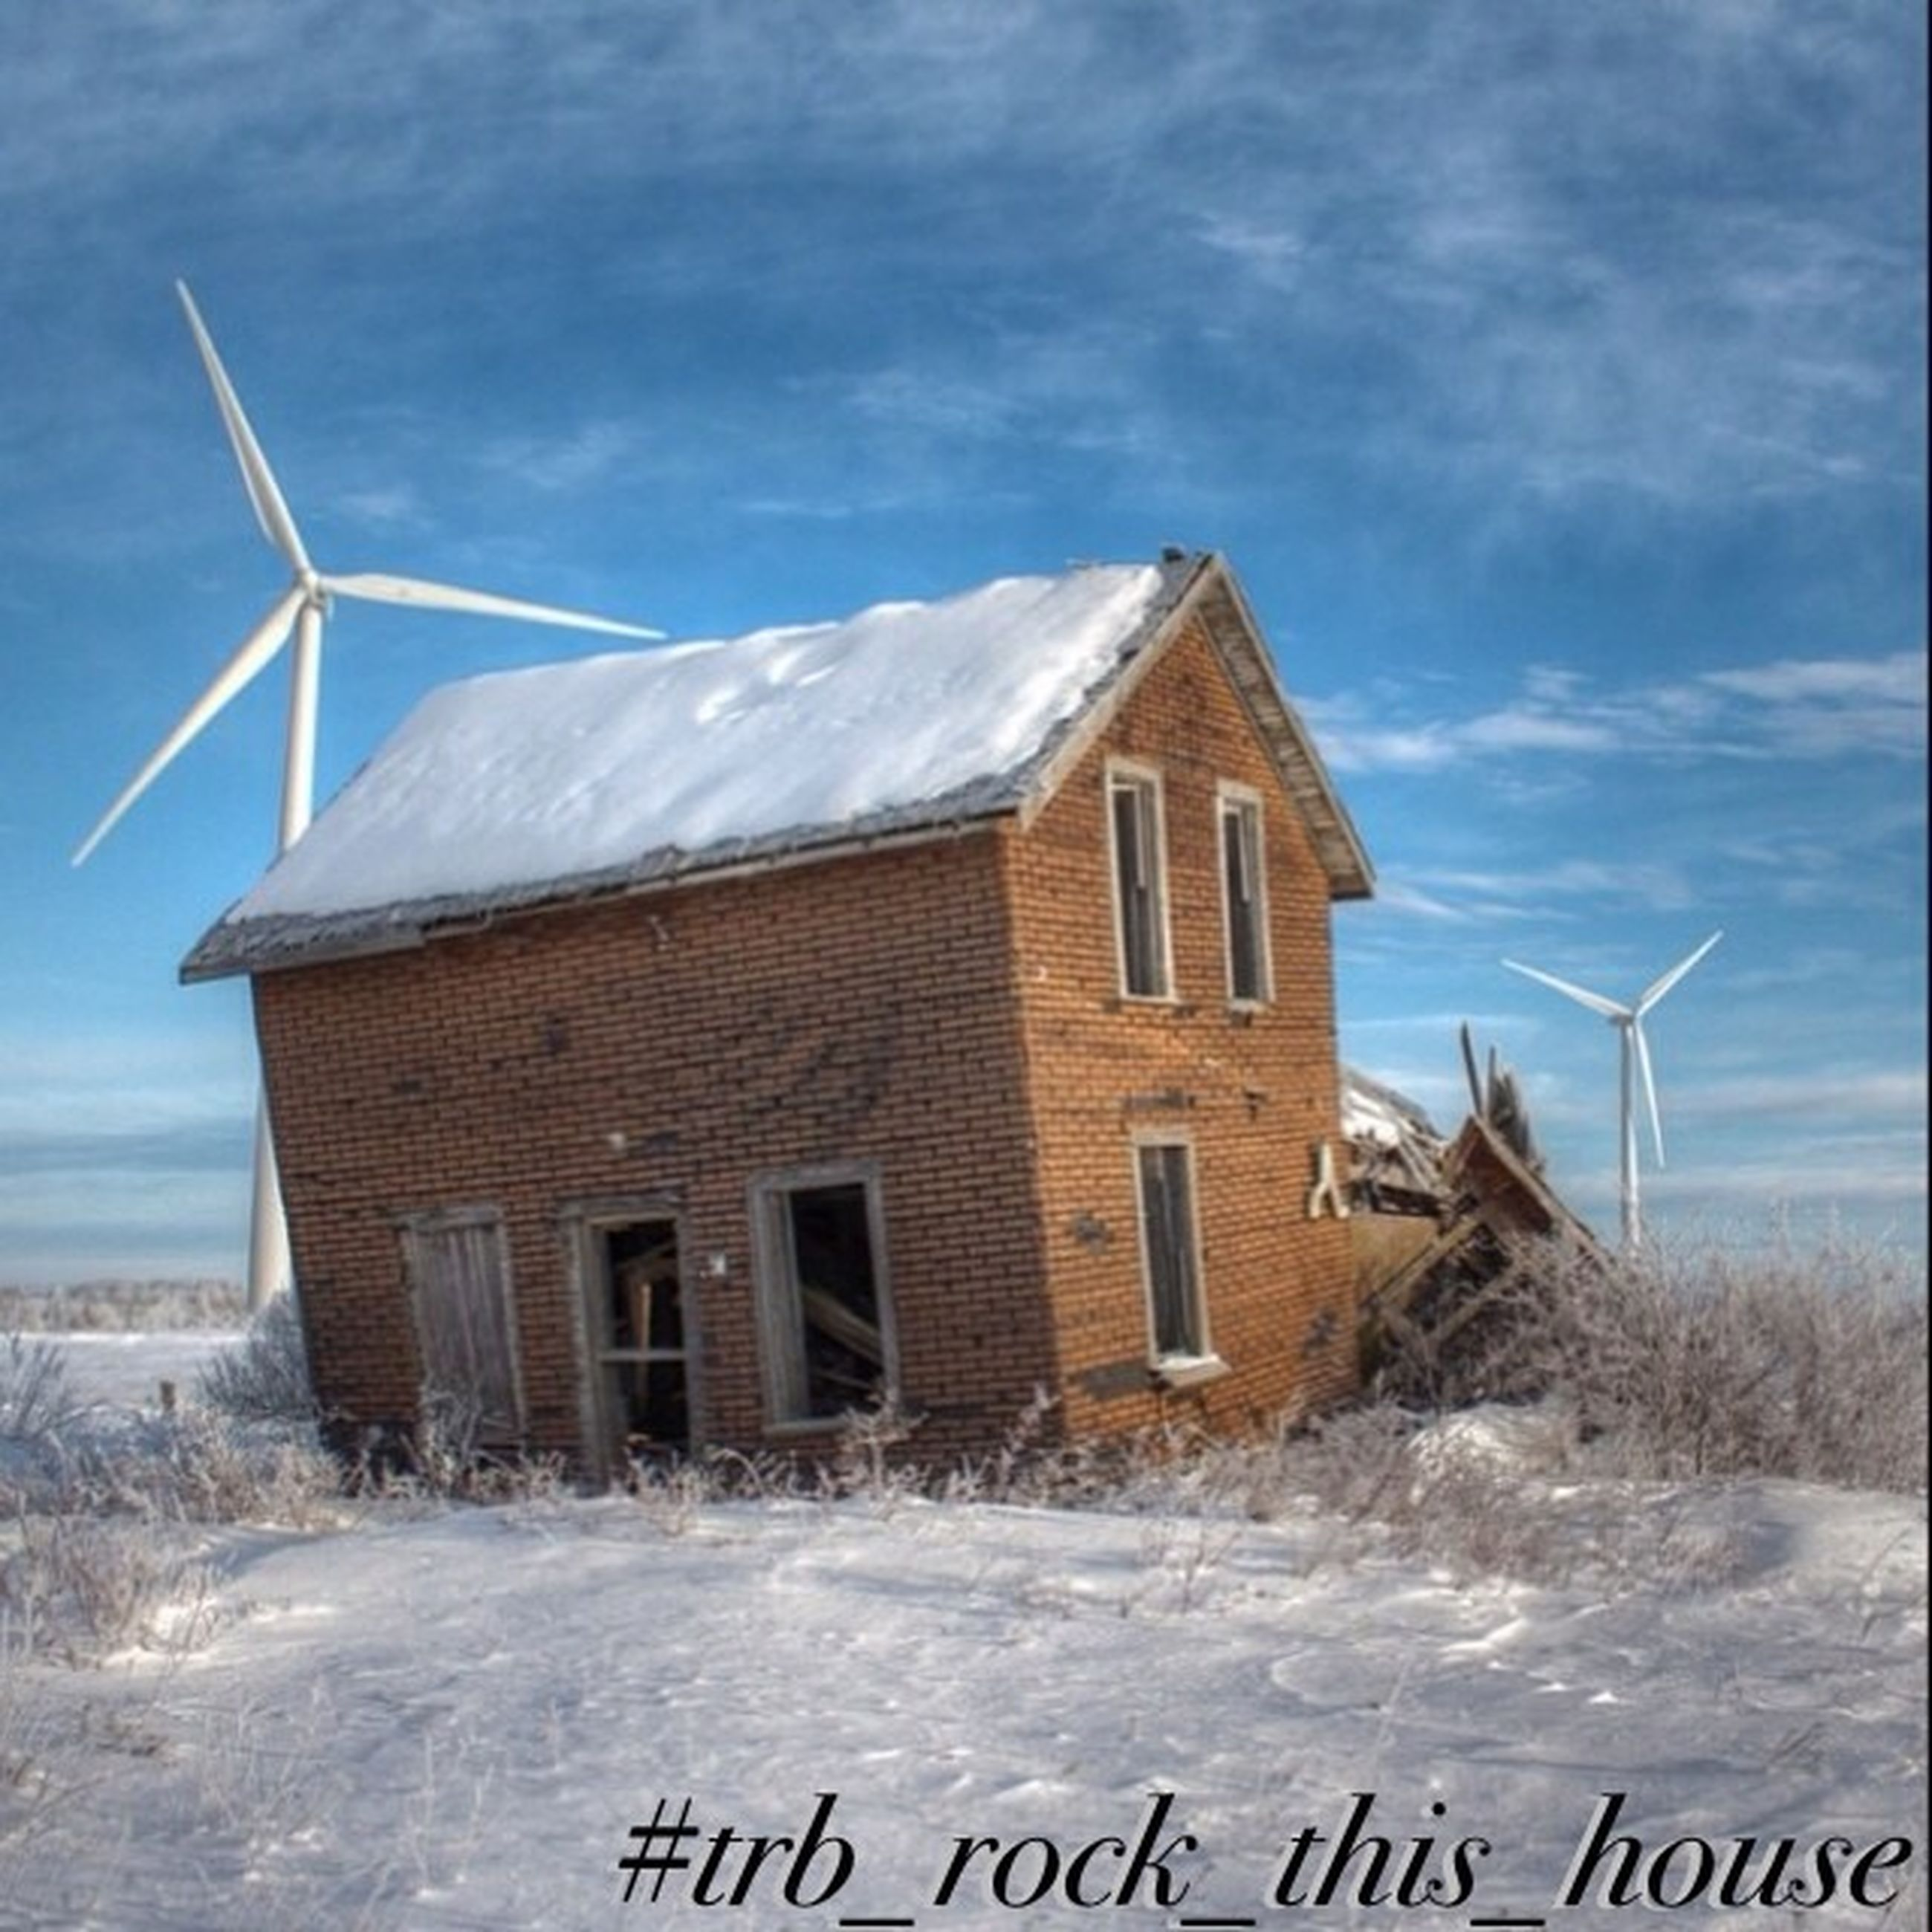 snow, winter, cold temperature, sky, building exterior, built structure, architecture, weather, house, mountain, cloud - sky, season, nature, day, landscape, cloud, outdoors, no people, field, white color